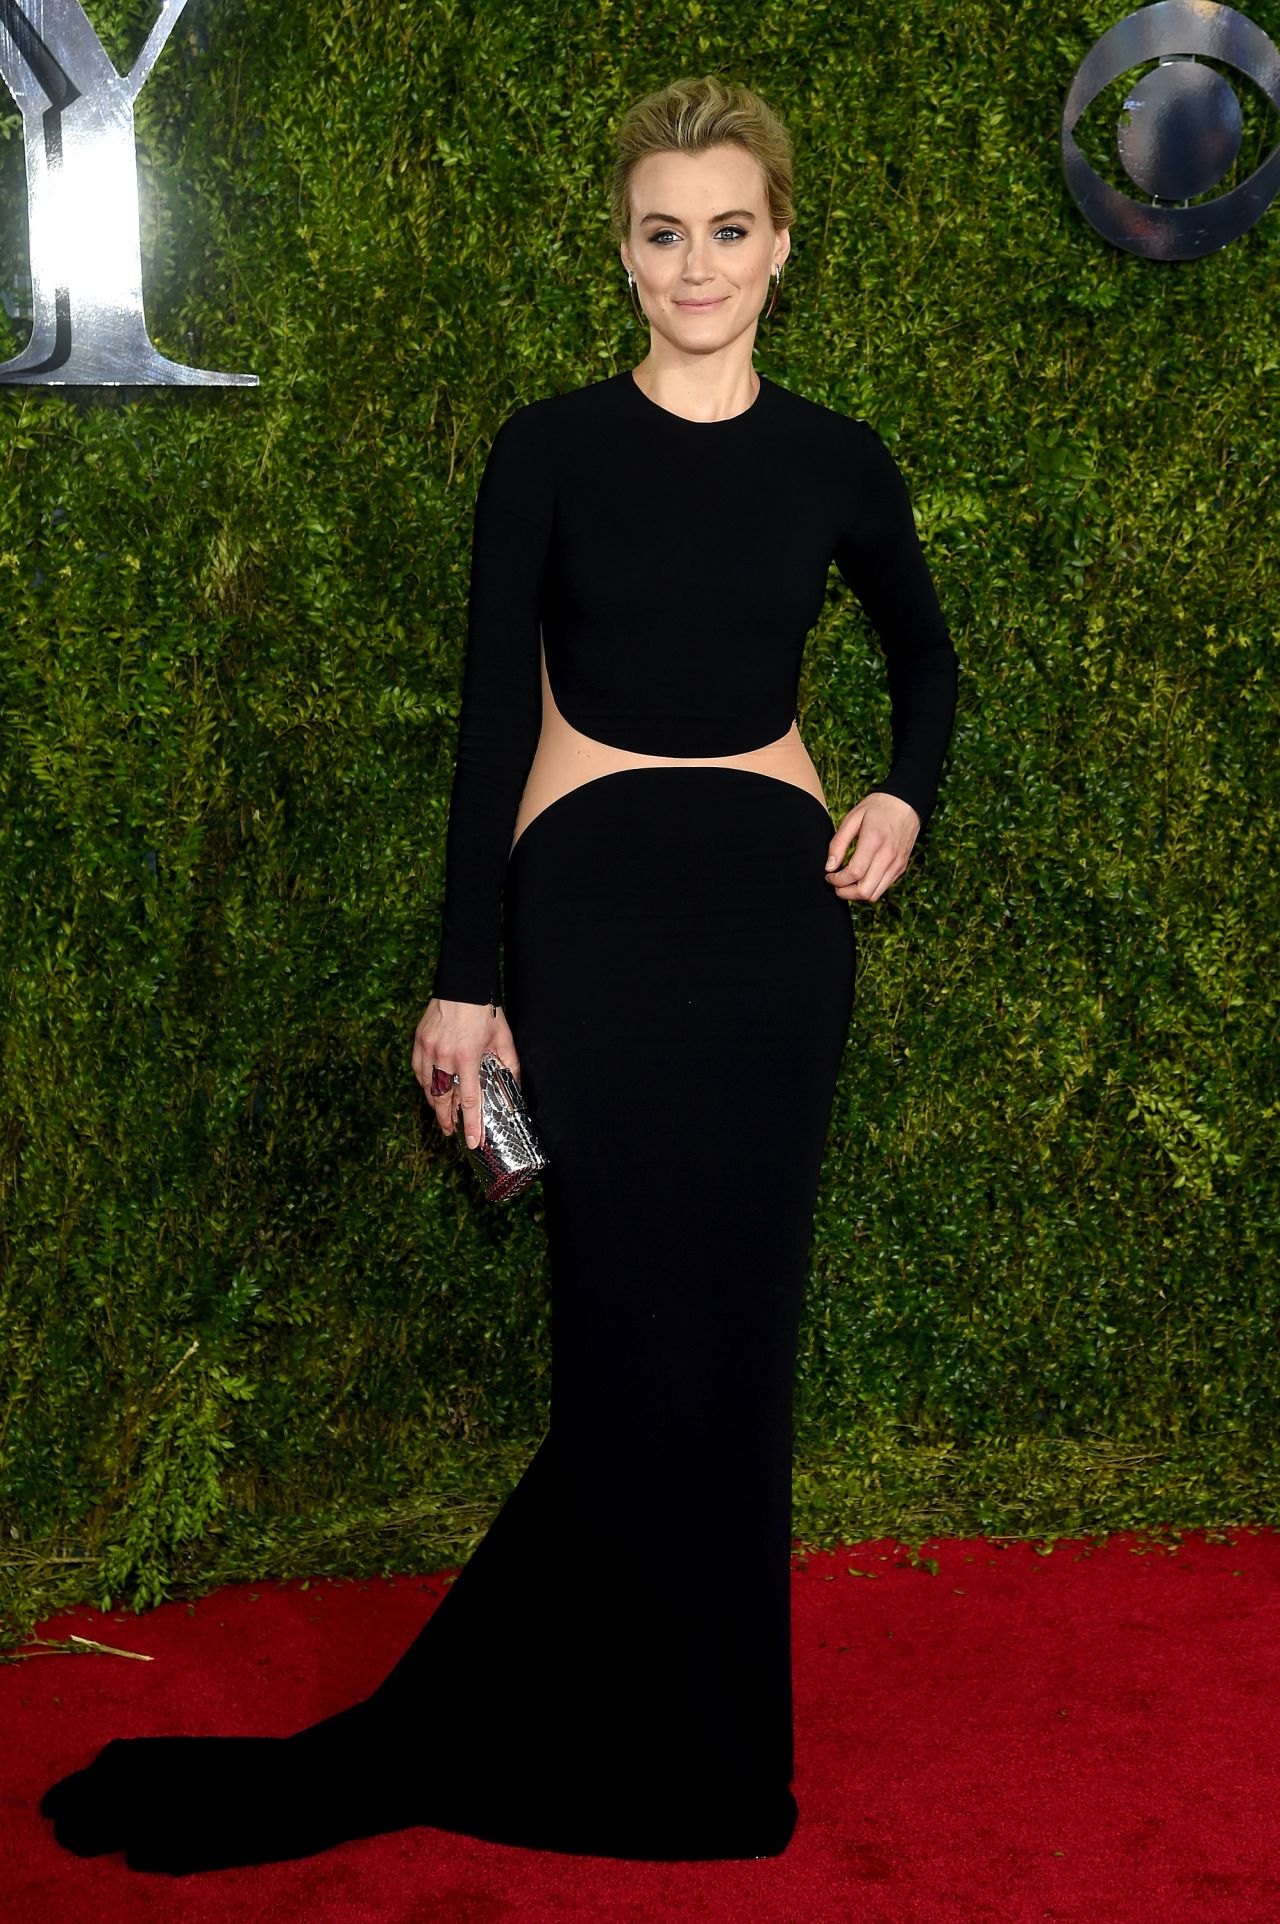 taylor-schilling-in-michael-kors-at-the-2015-tony-awards